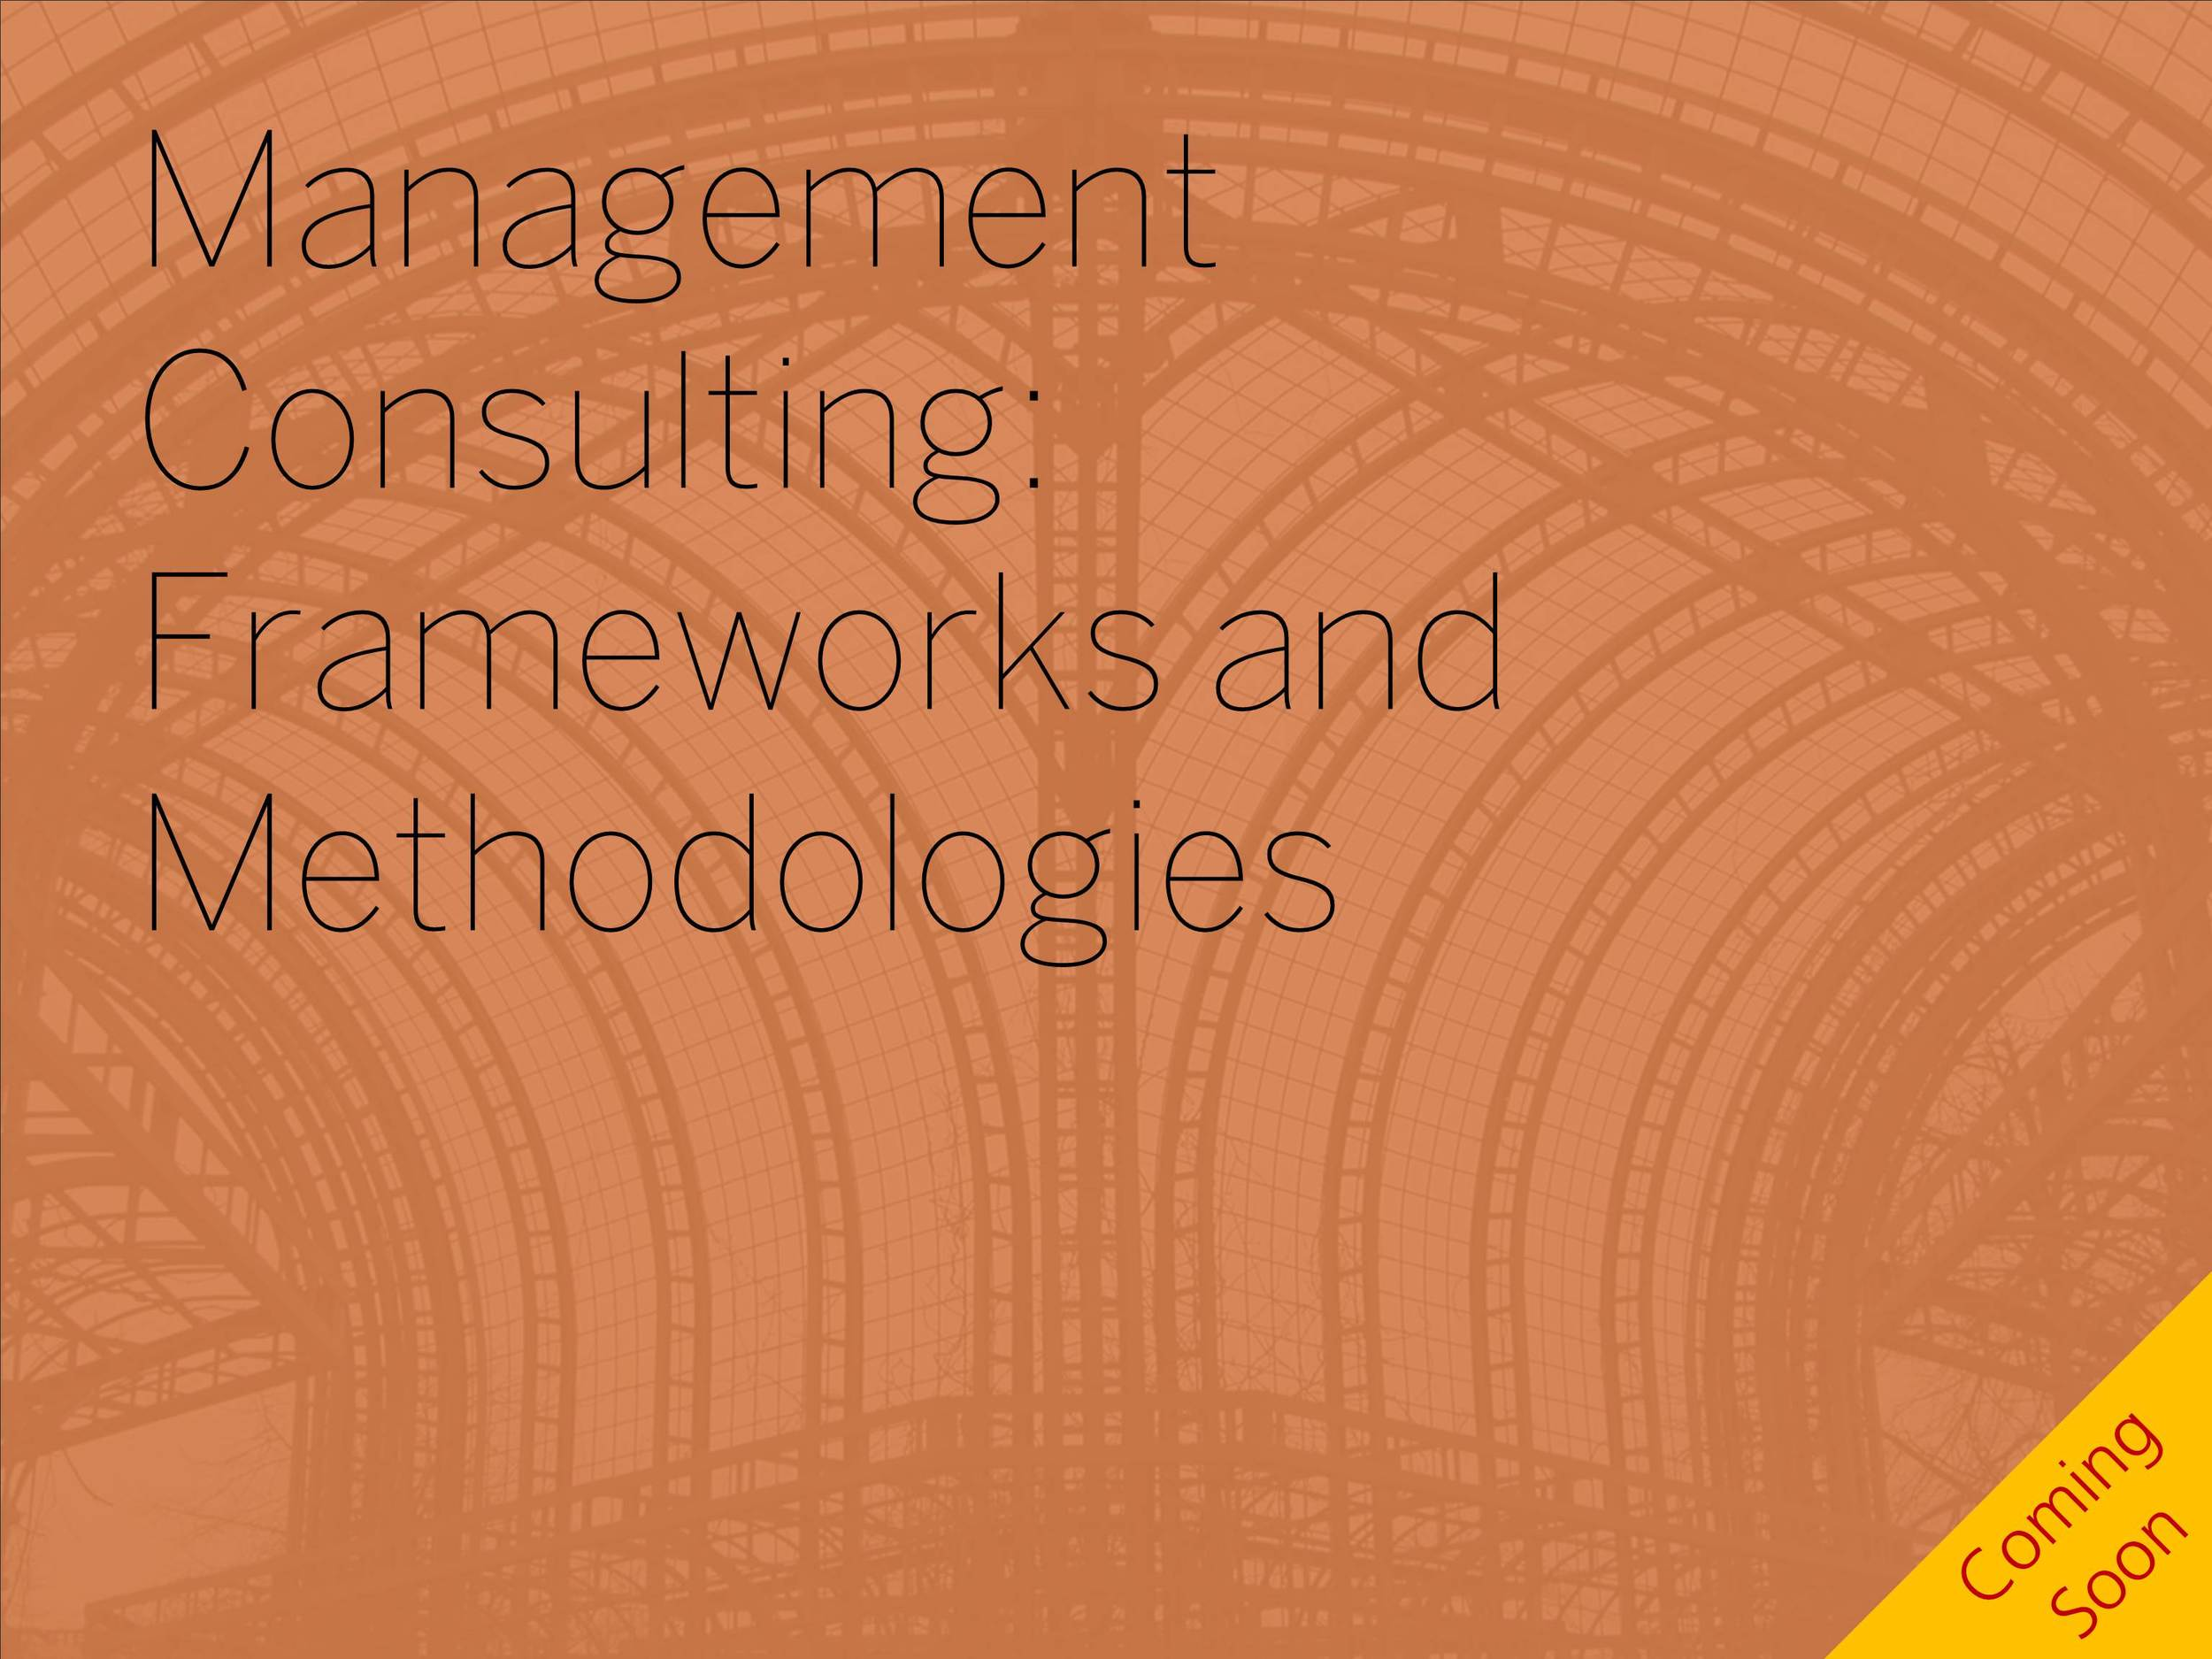 Management Consulting Frameworks and Methodologies